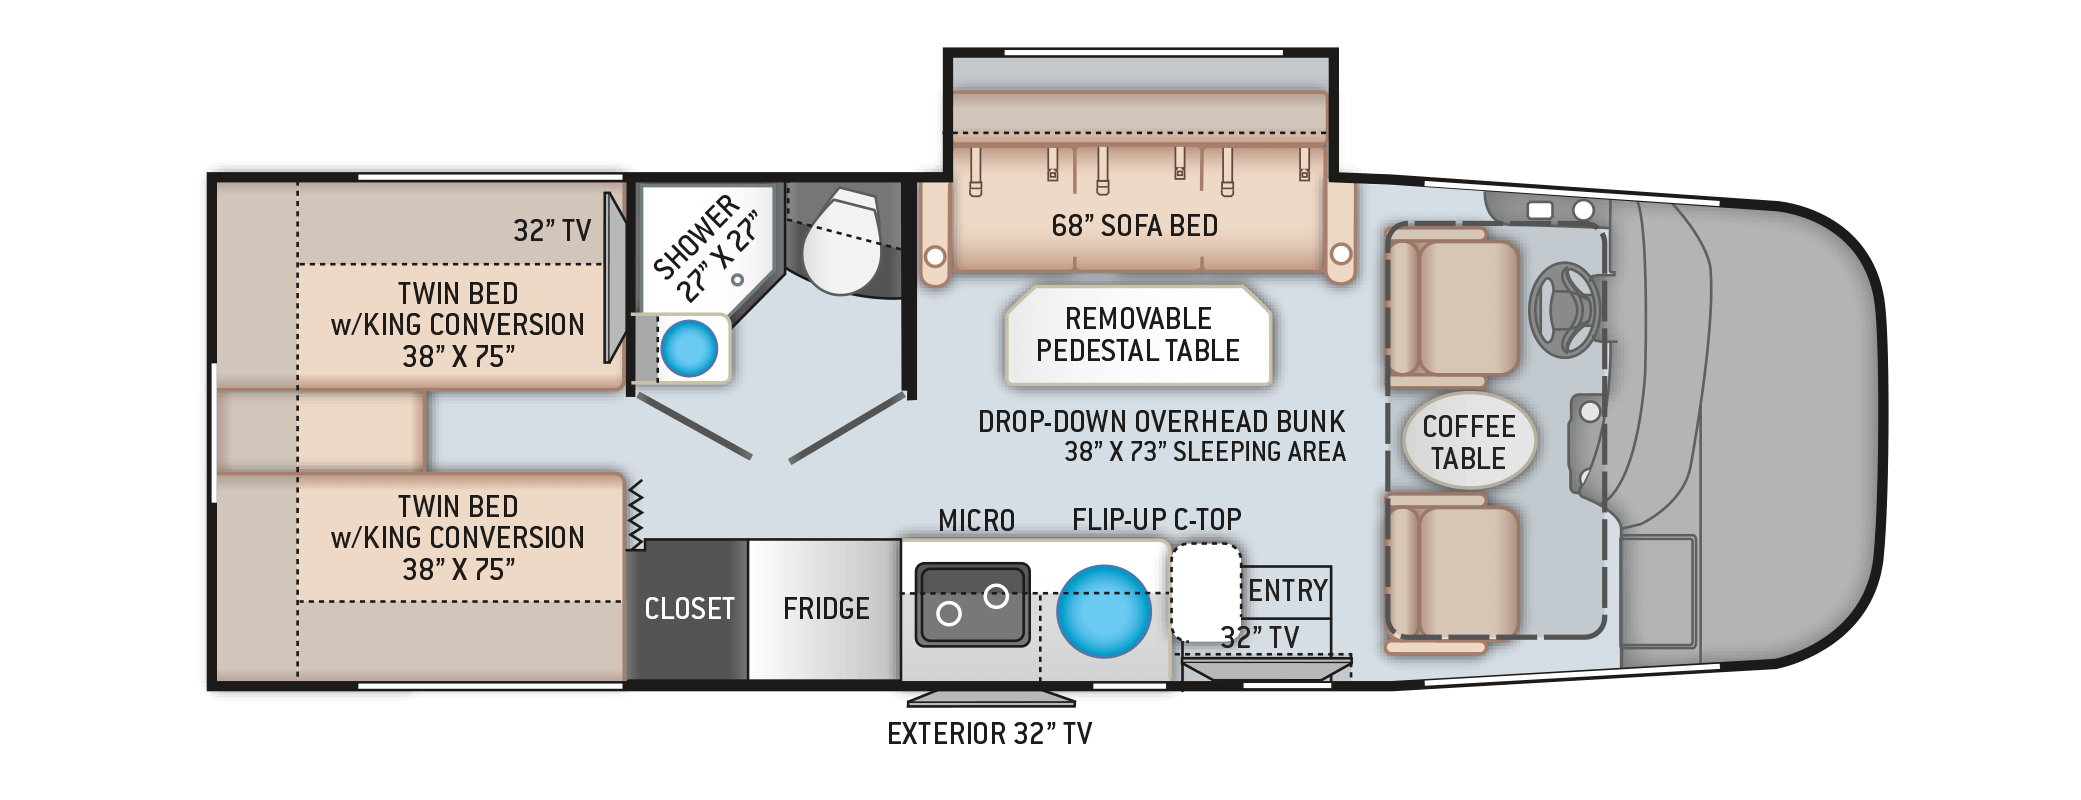 Floor Plans Vegas: 24.1